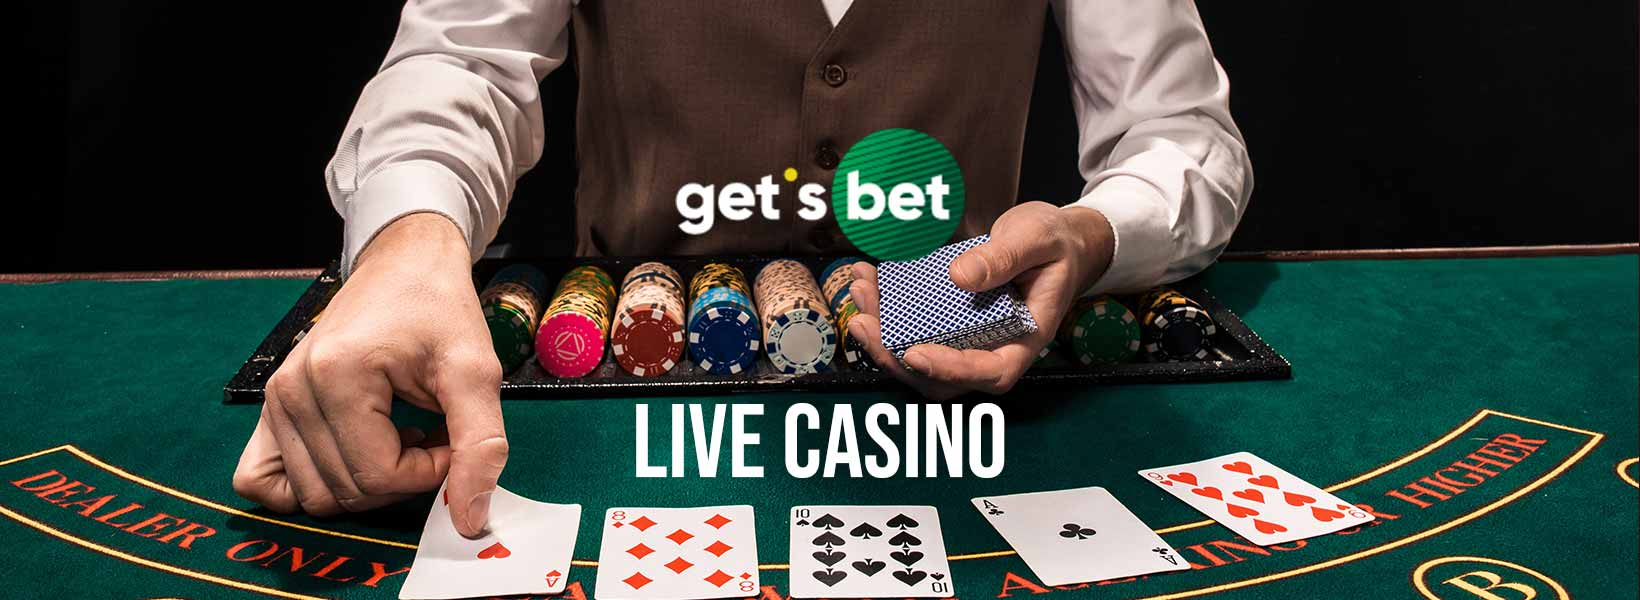 gets bet live casino